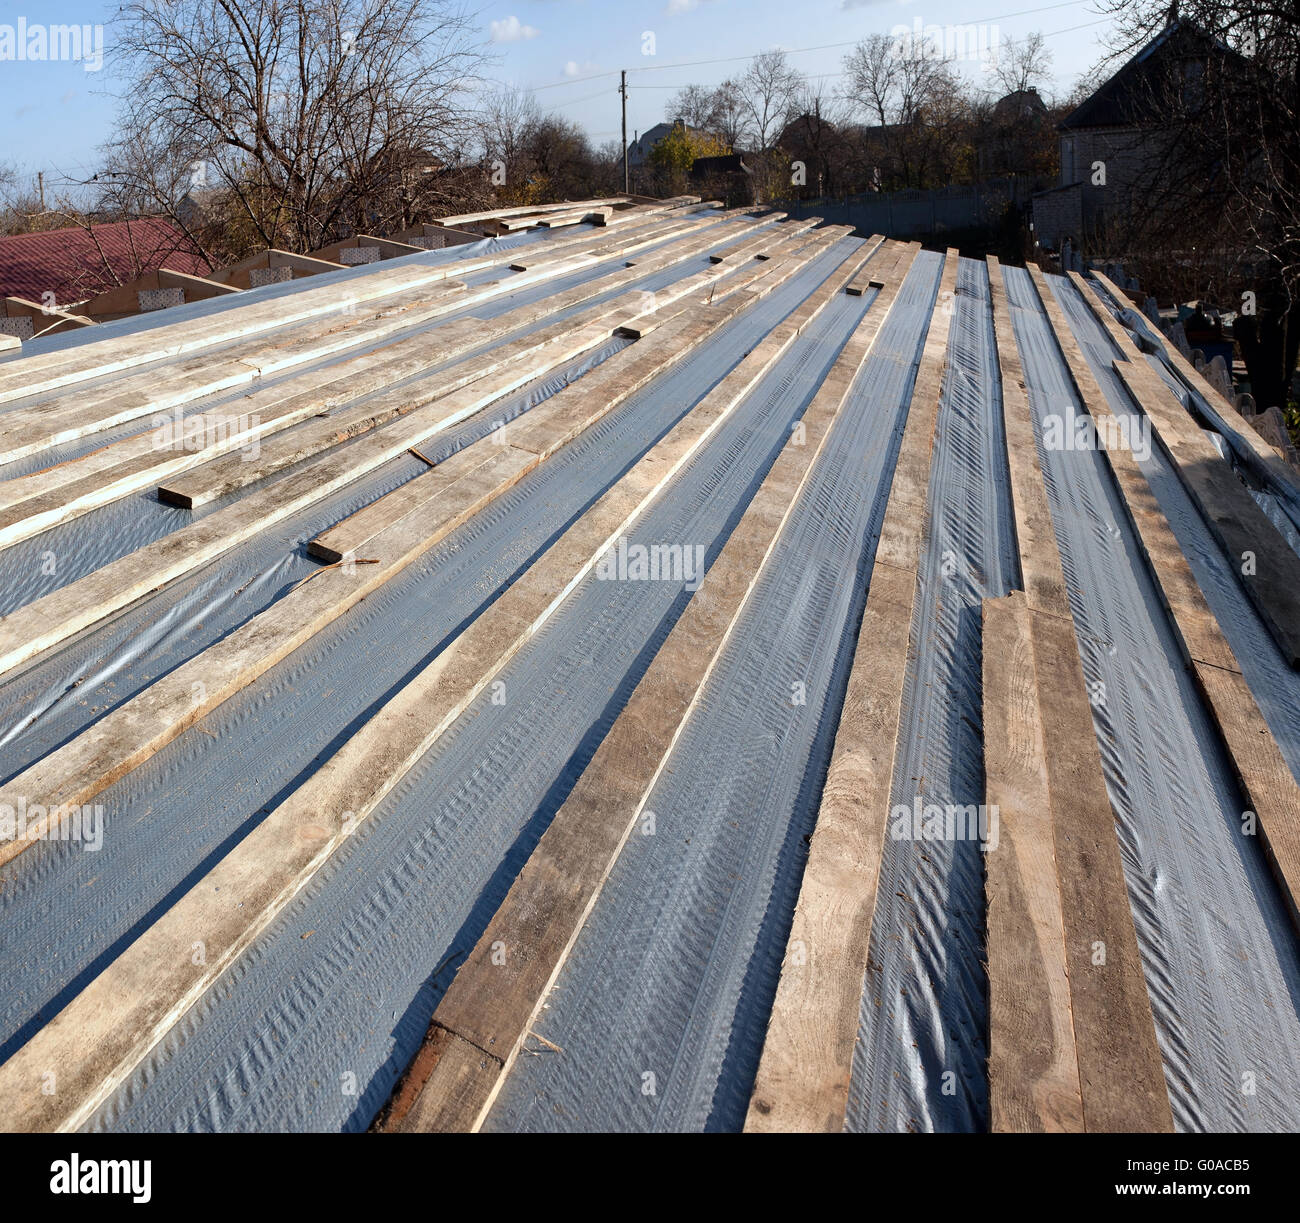 Installation of a hydraulic barrier at the roof - Stock Image